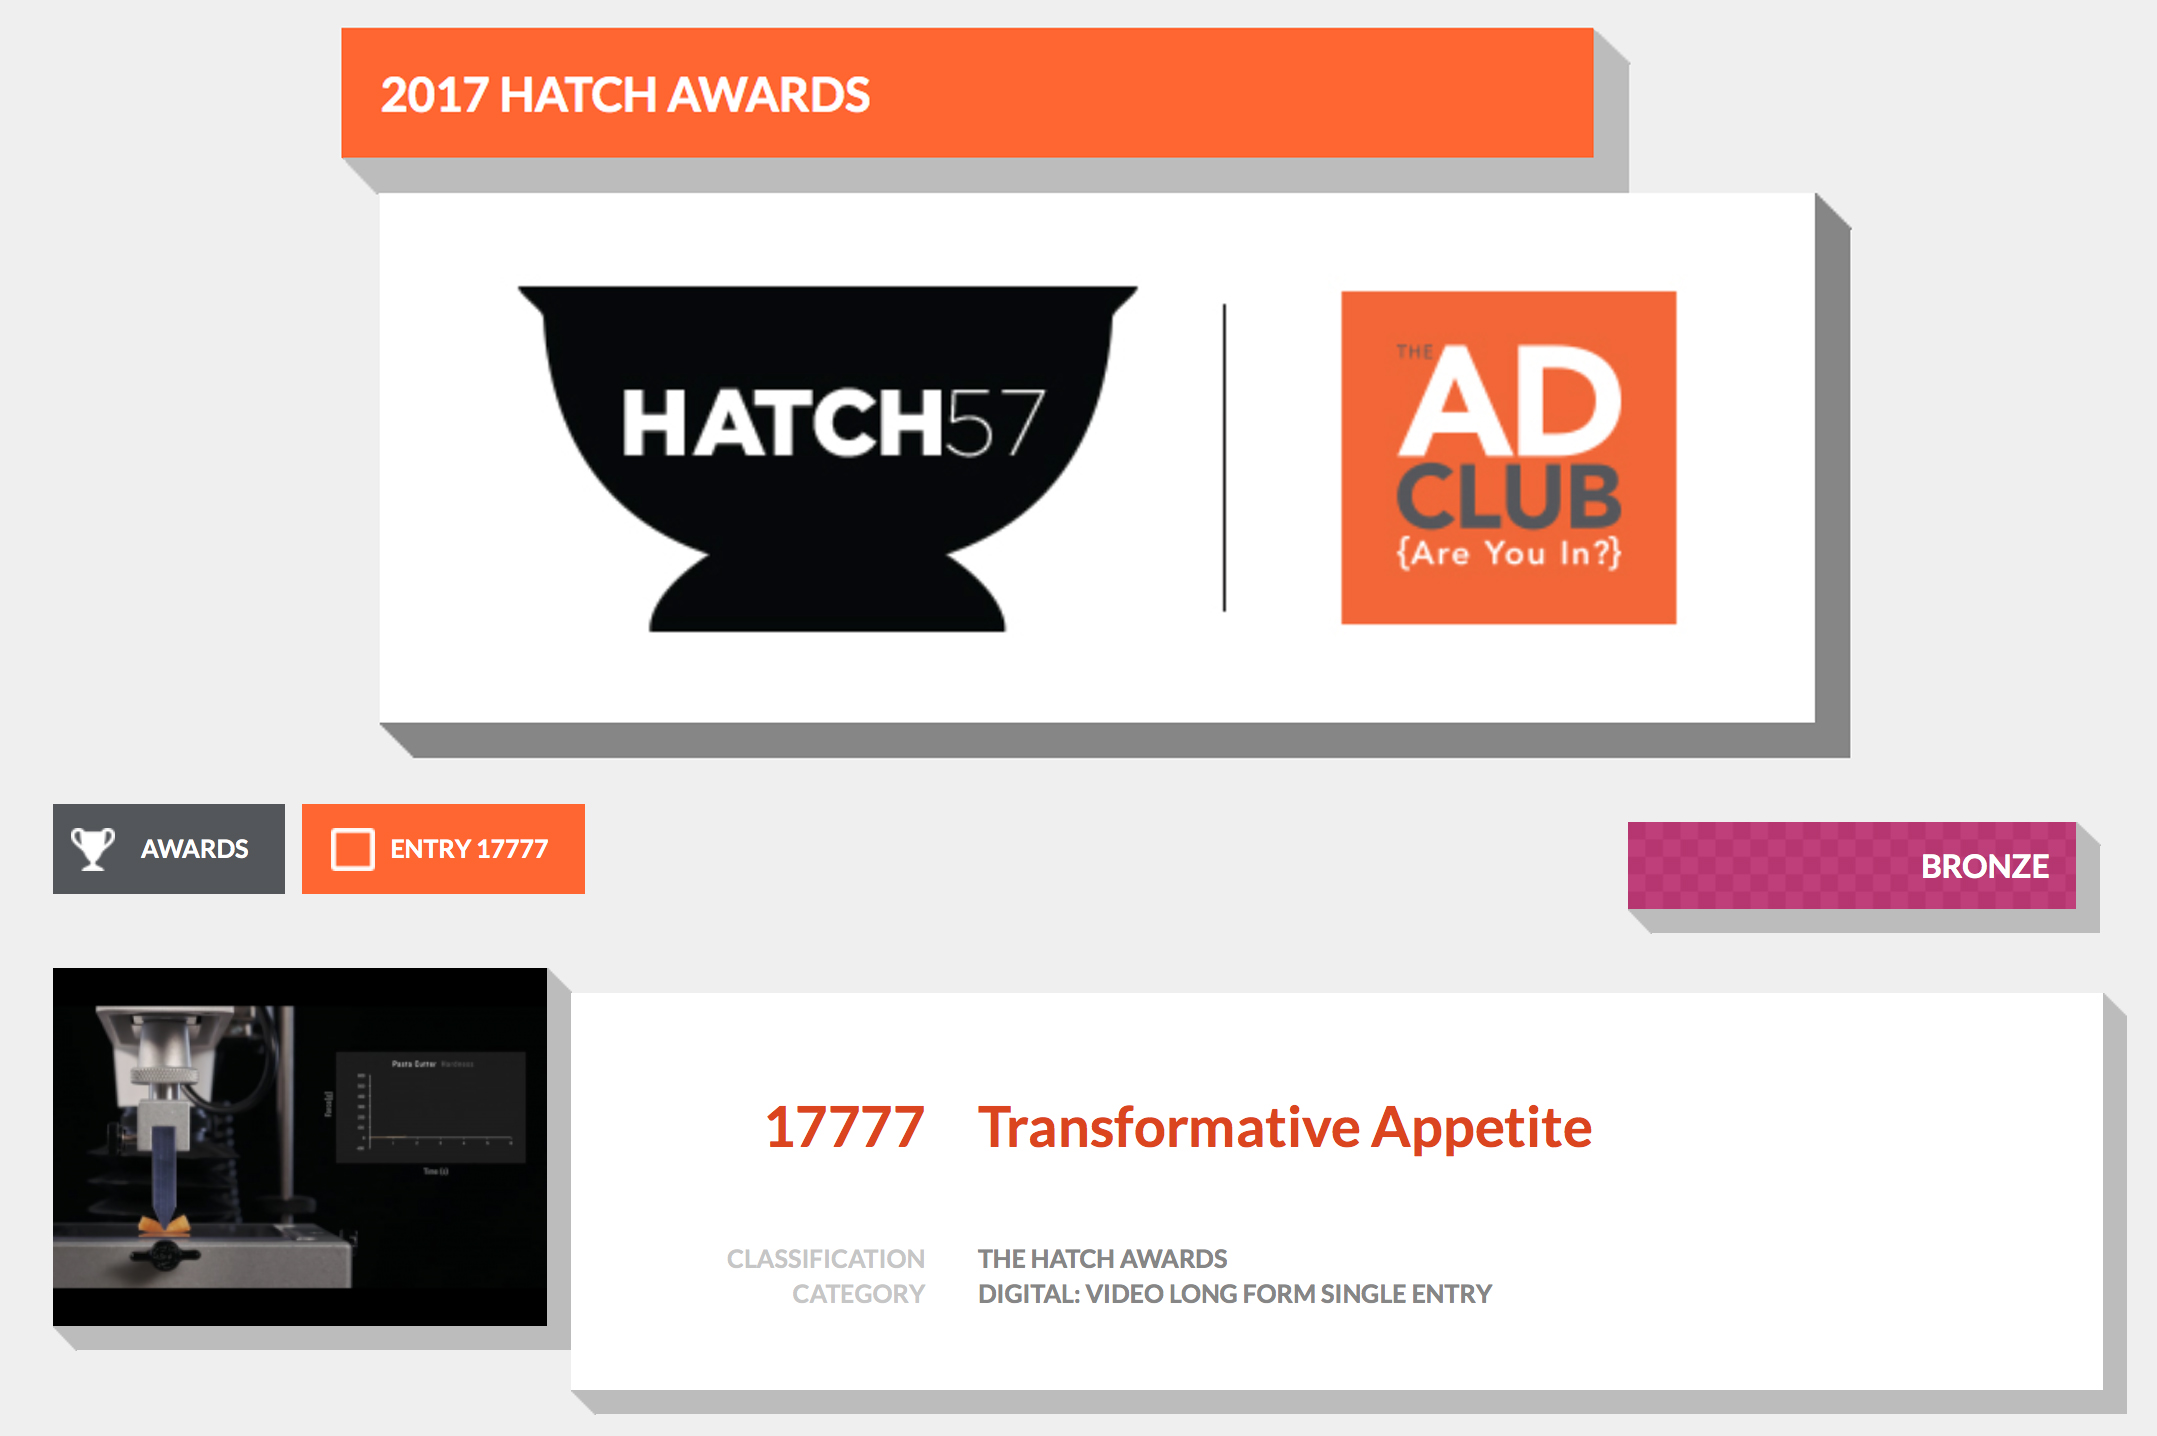 Hatch Awards, Boston Commercial Photography, Boston Food Photography, Boston Food Video, Boston Videographer